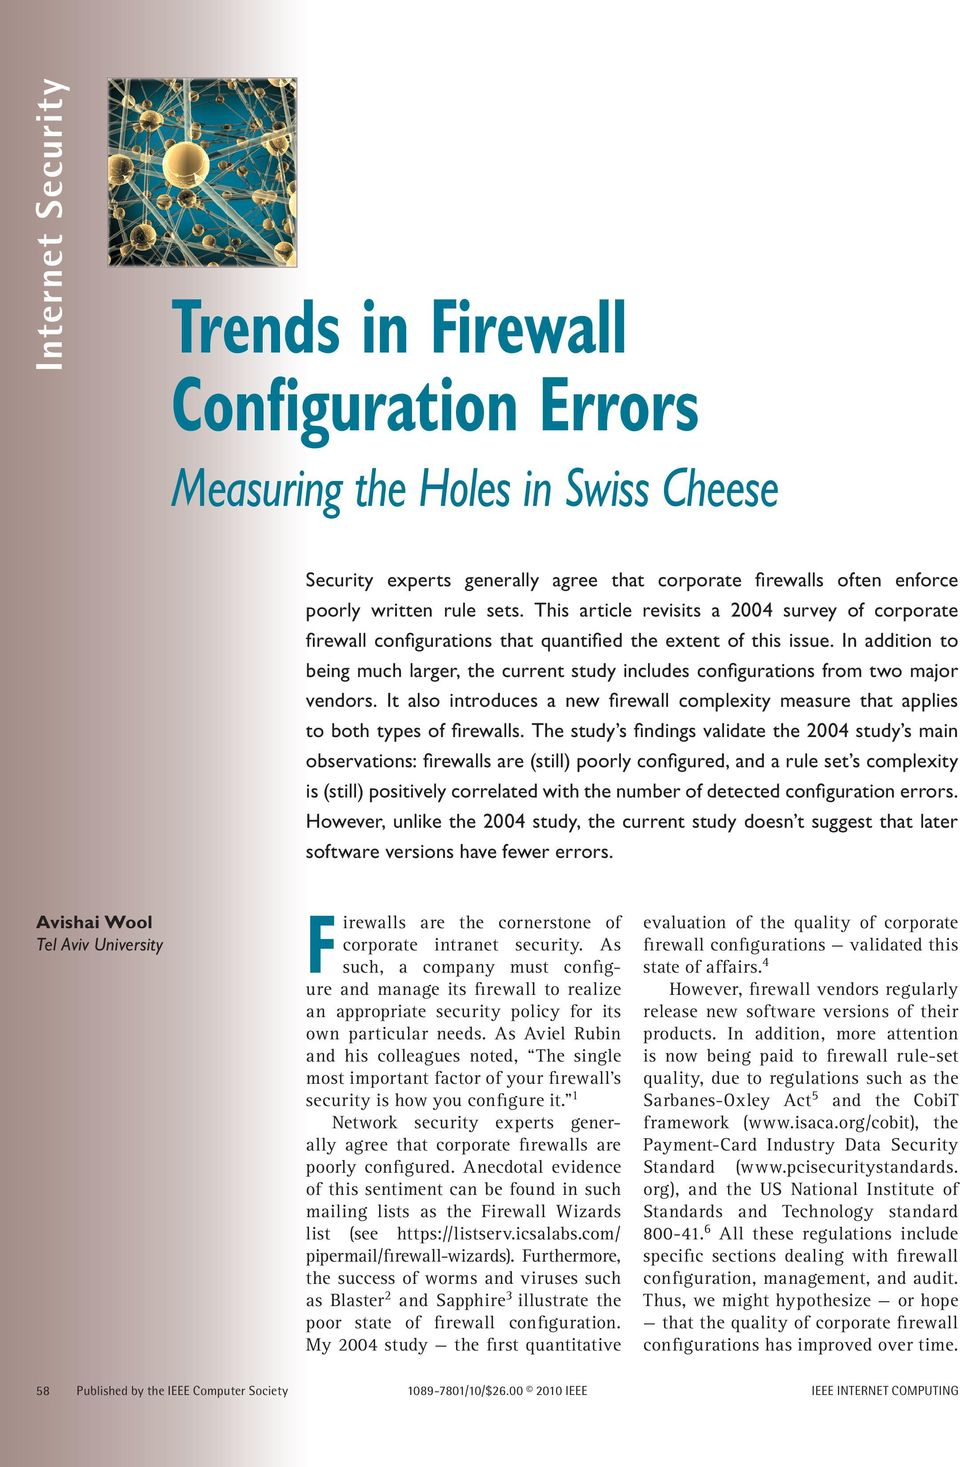 In addition to being much larger, the current study includes configurations from two major vendors. It also introduces a new firewall complexity measure that applies to both types of firewalls.